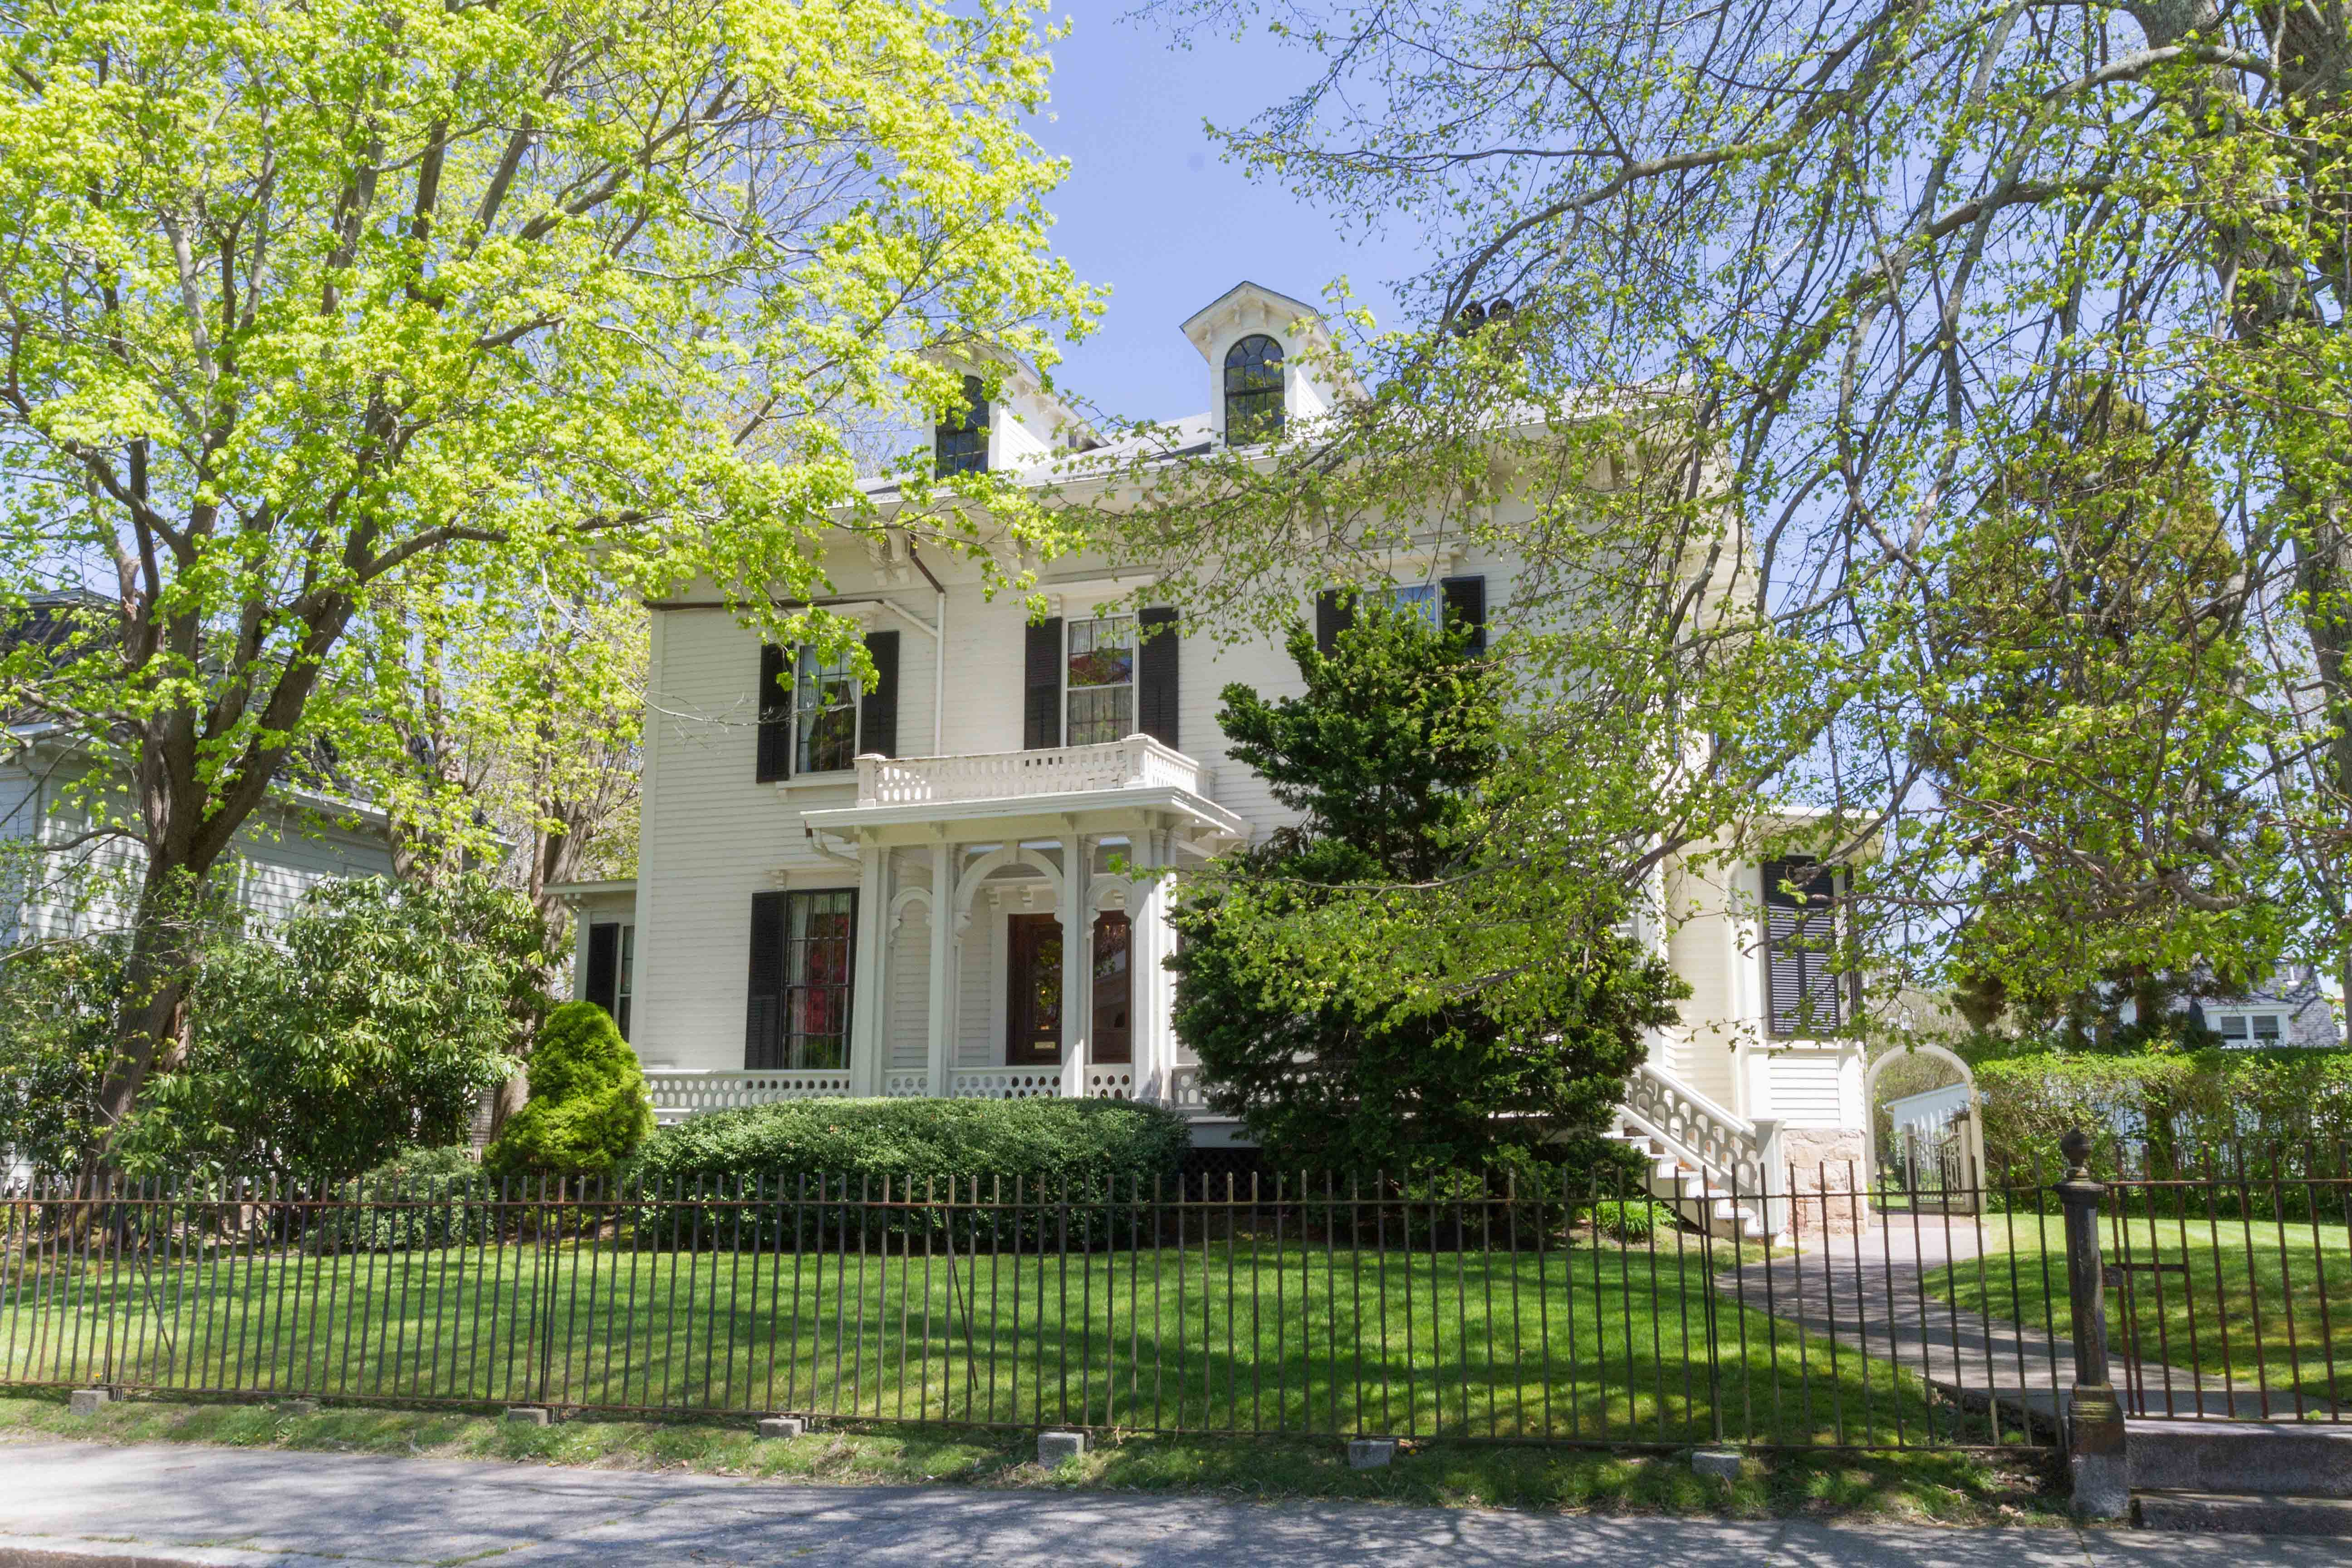 LILA DELMAN REAL ESTATE SELLS KAY STREET VICTORIAN AND ADJACENT LOT FOR A COMBINED SALES PRICE OF $2.395M